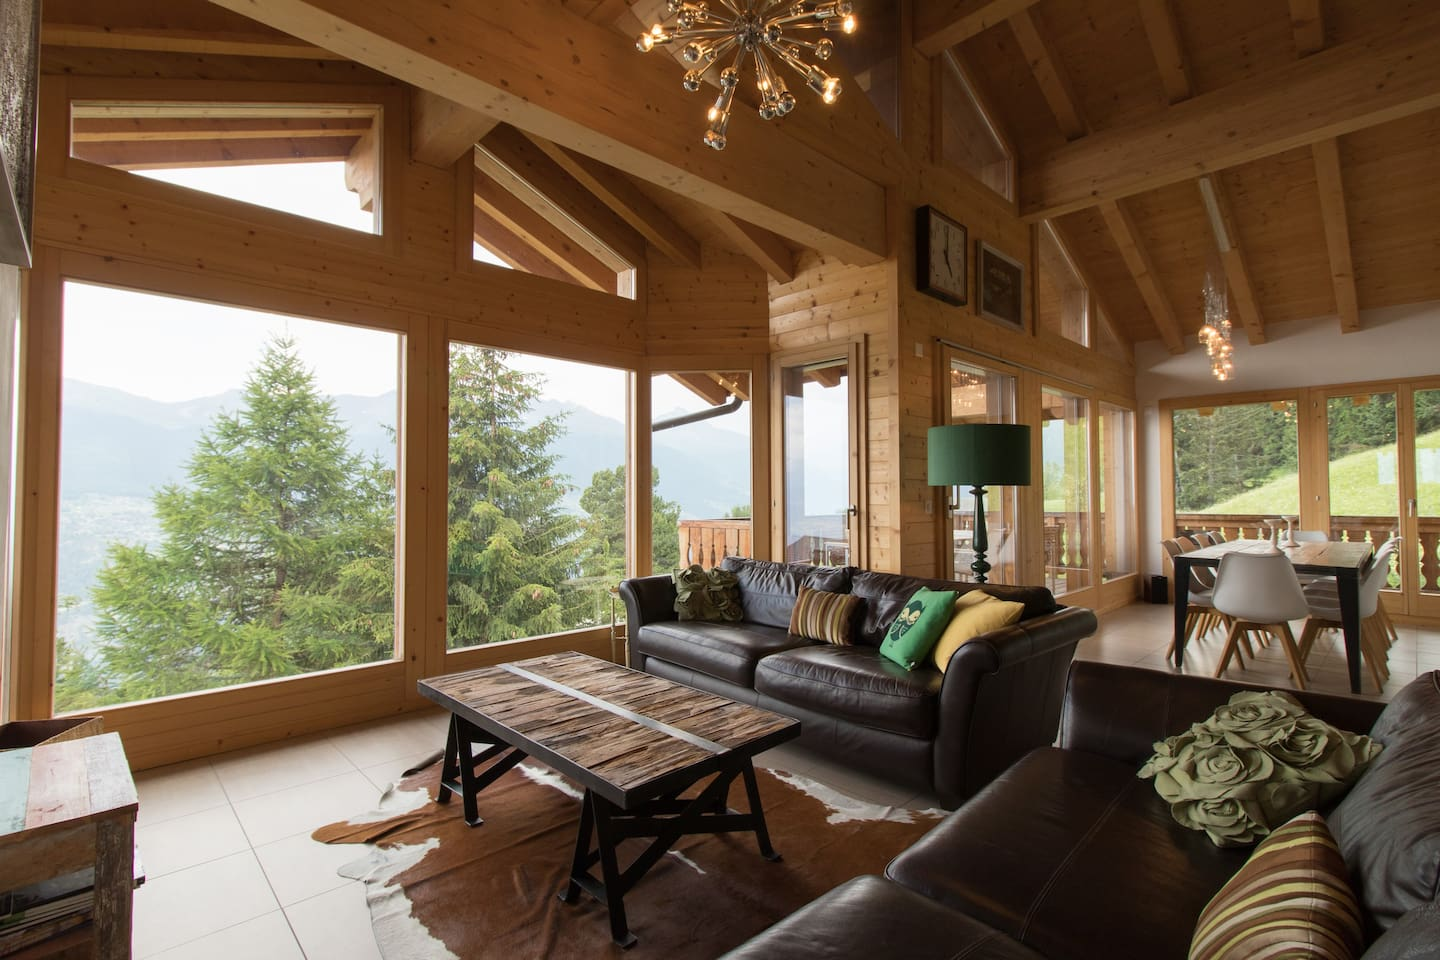 Luxury 5* chalet, sauna, hot tub - Verbier region - Houses for ...